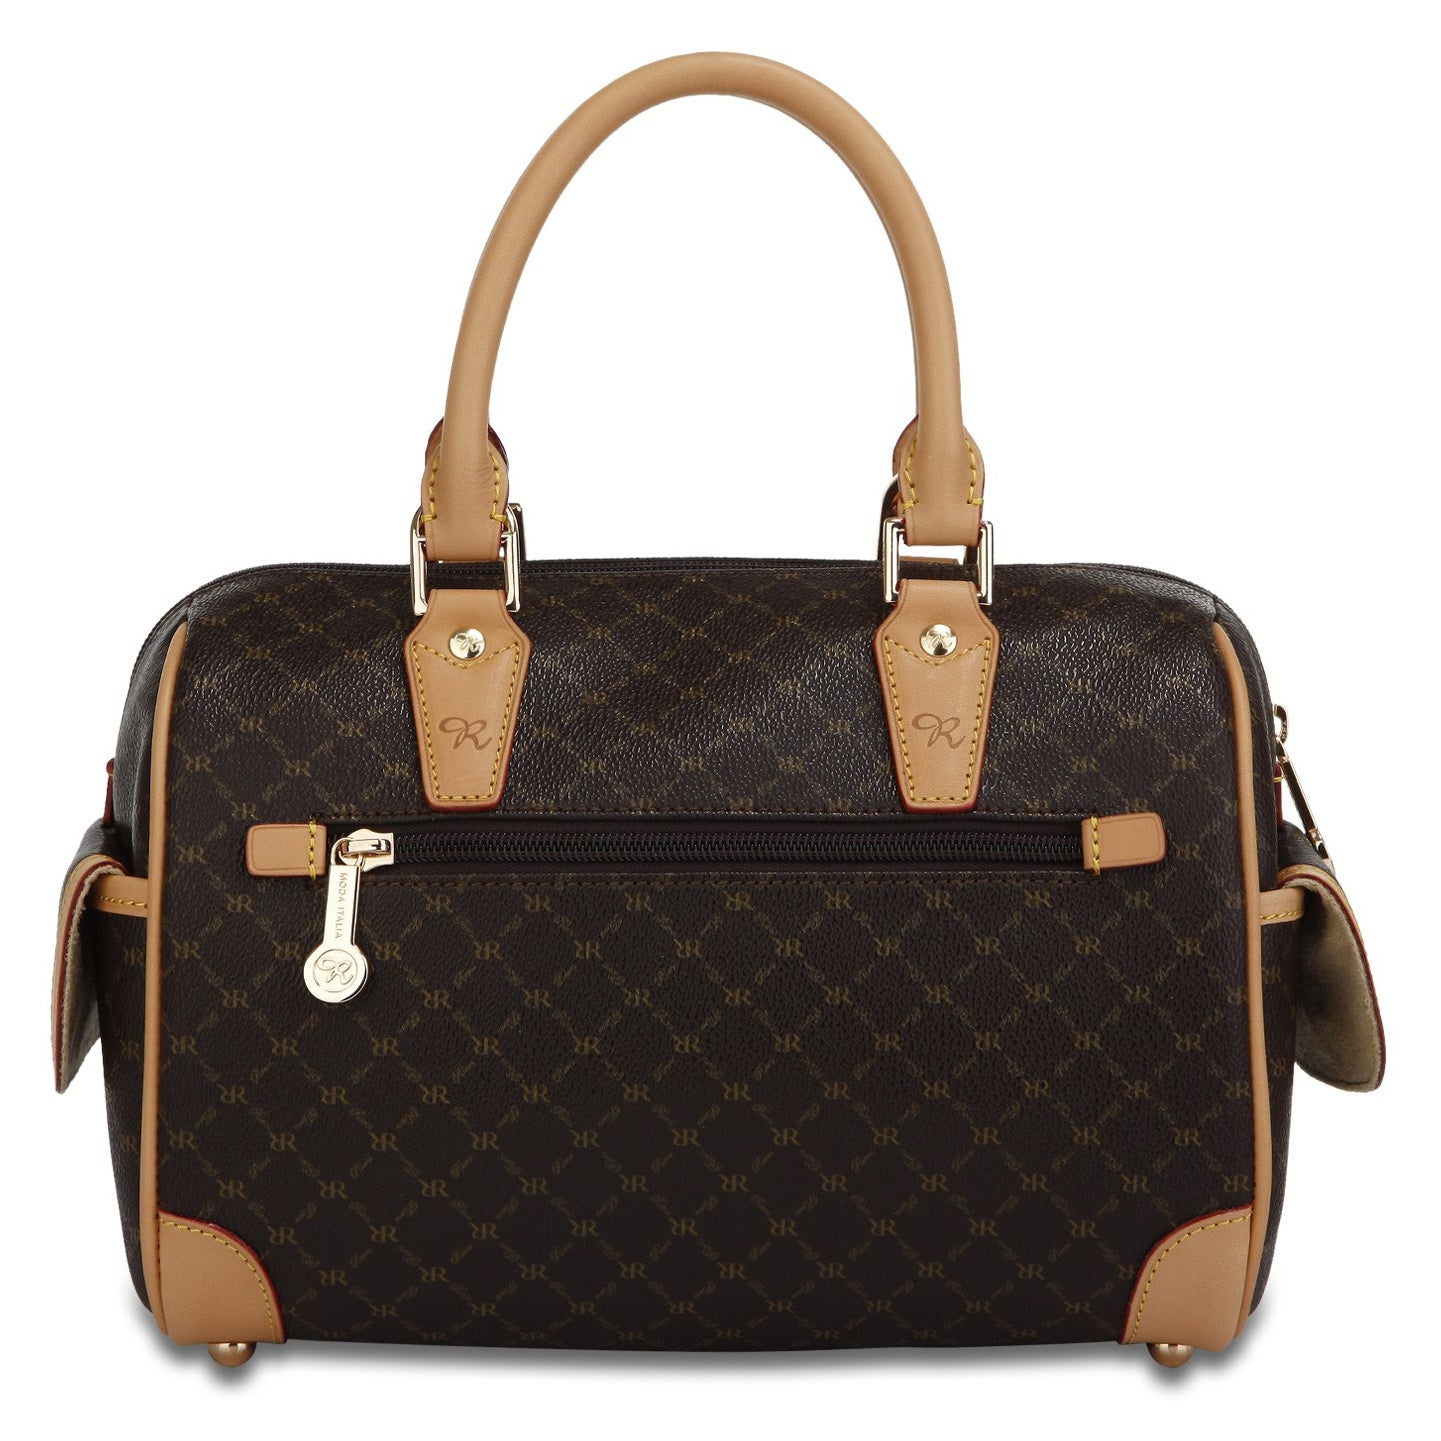 1129ef7201 Shop Rioni Signature Small Boston Bag - Free Shipping Today - Overstock -  3298120